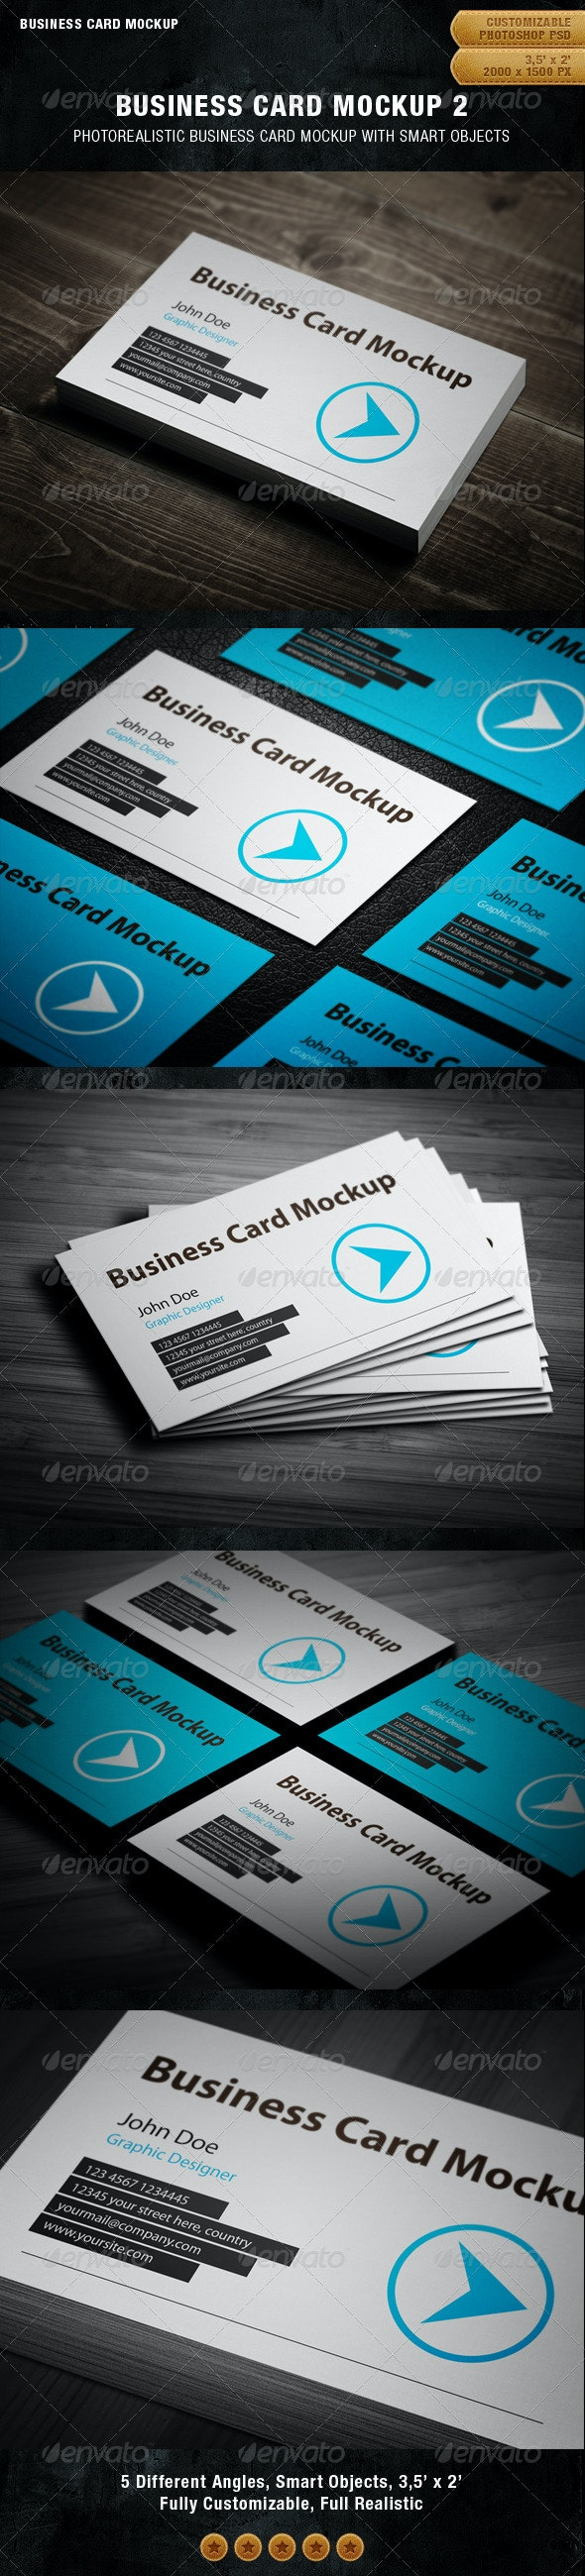 Business Card Mockup 2 - Business Cards Print